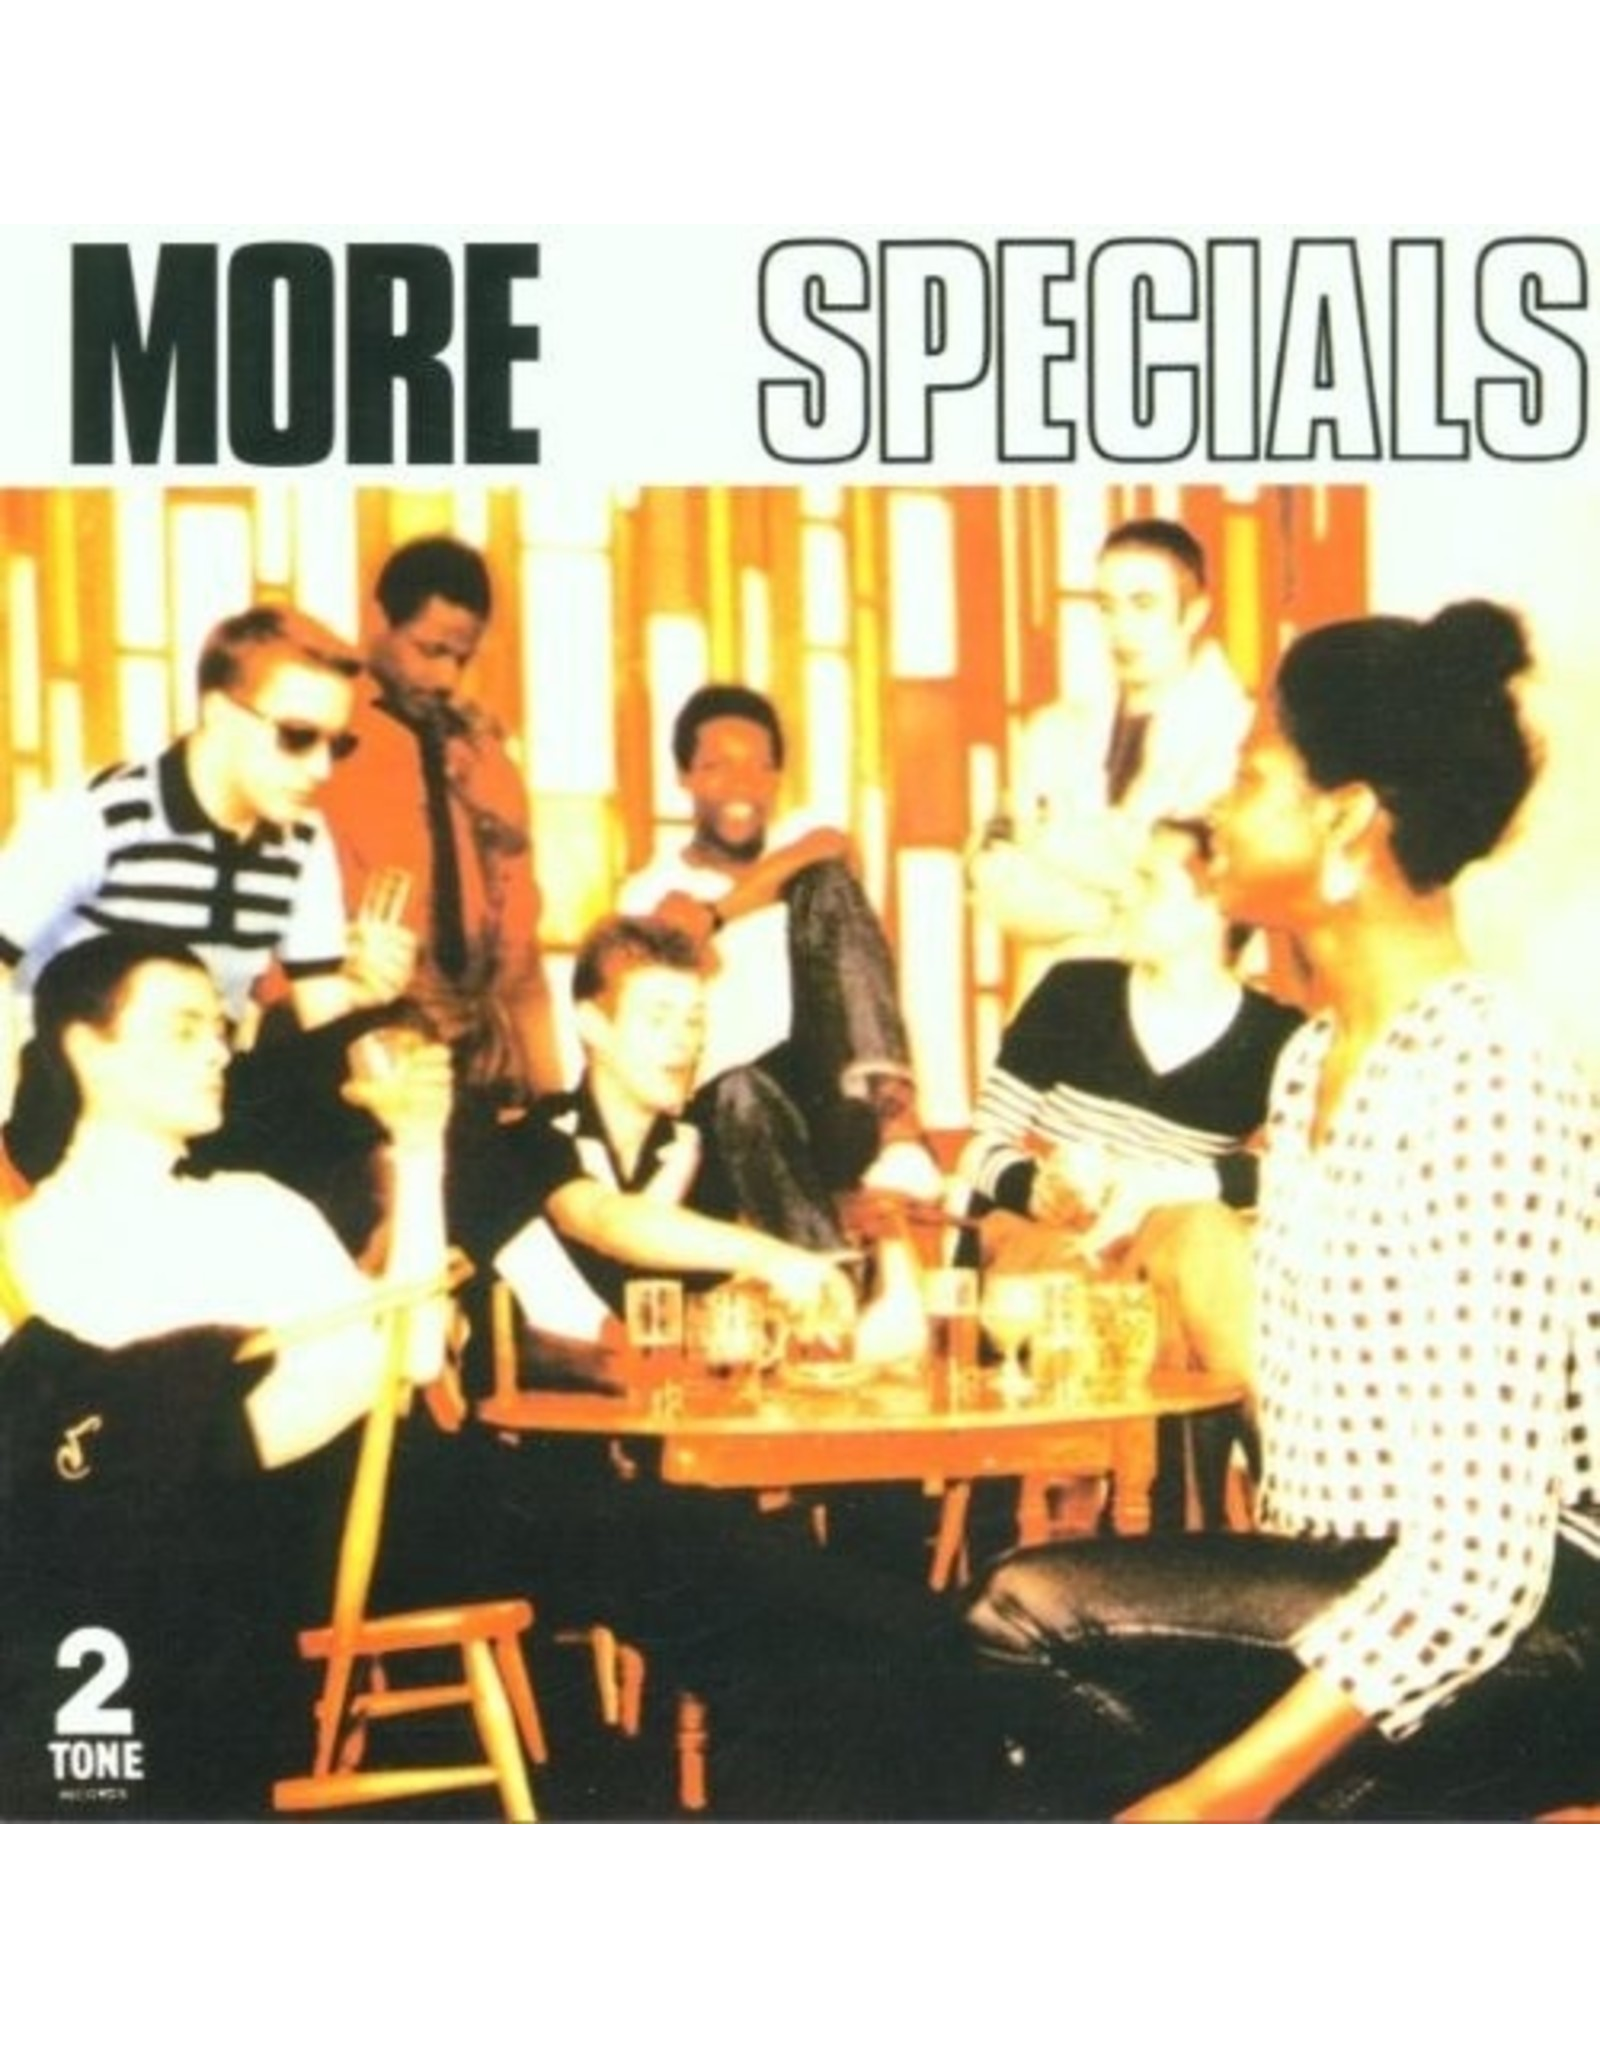 New Vinyl The Specials - More Specials